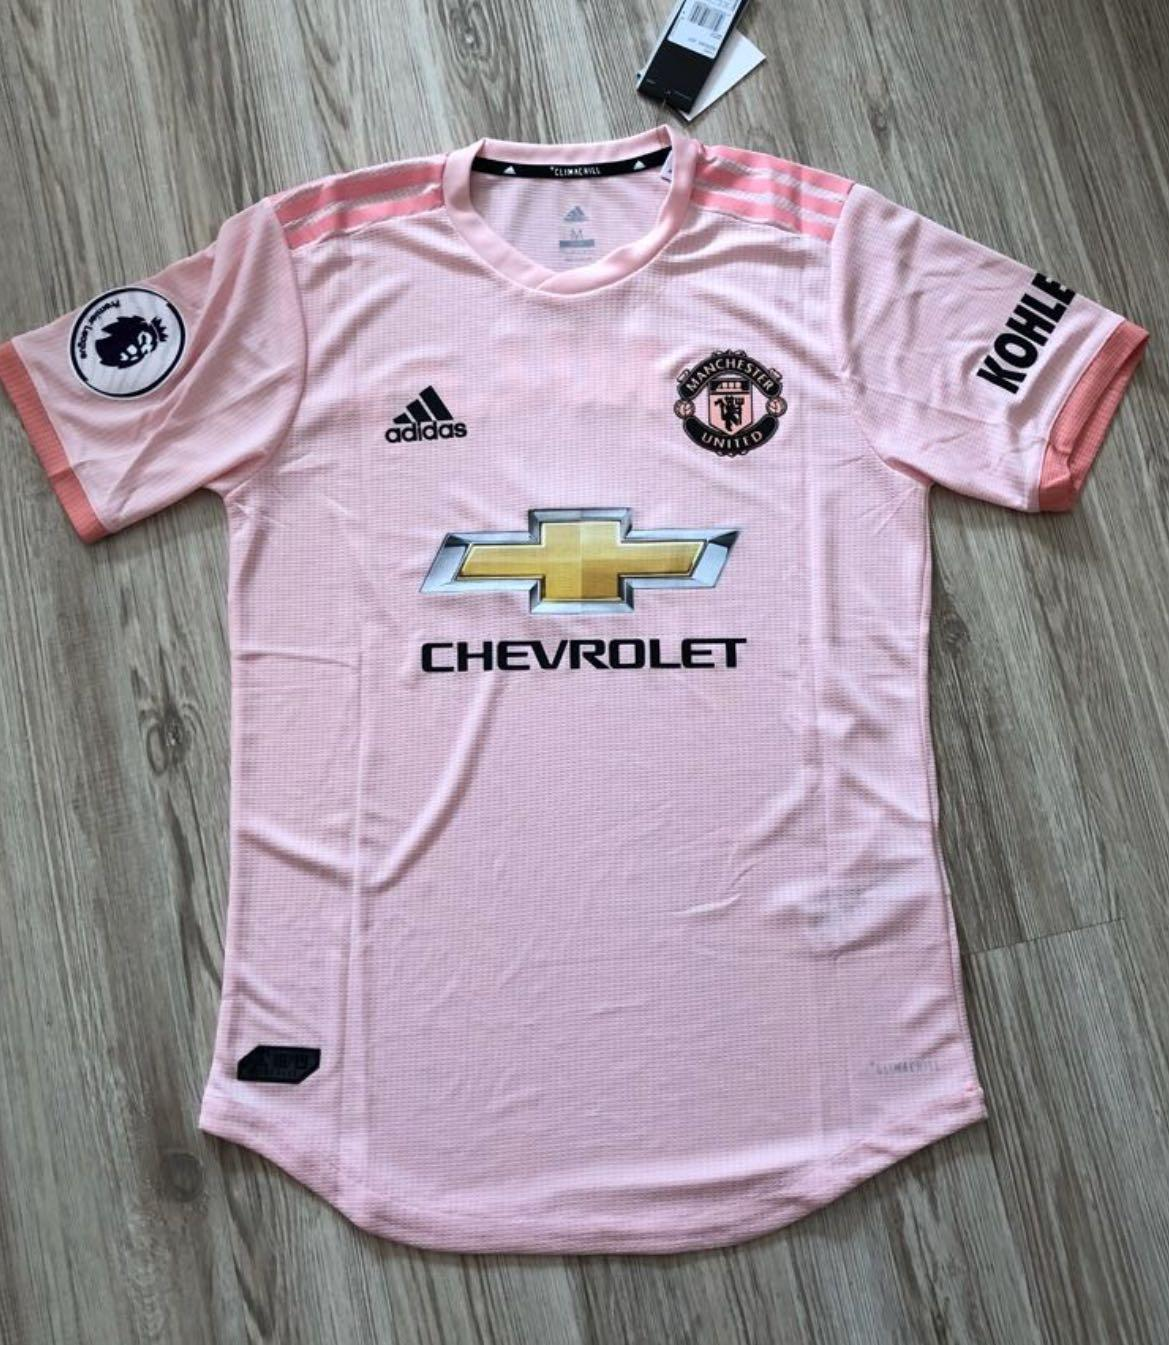 finest selection 3e0c2 a1a05 ❗️SALE❗️ Manchester United 18/19 away kit Manchester ...